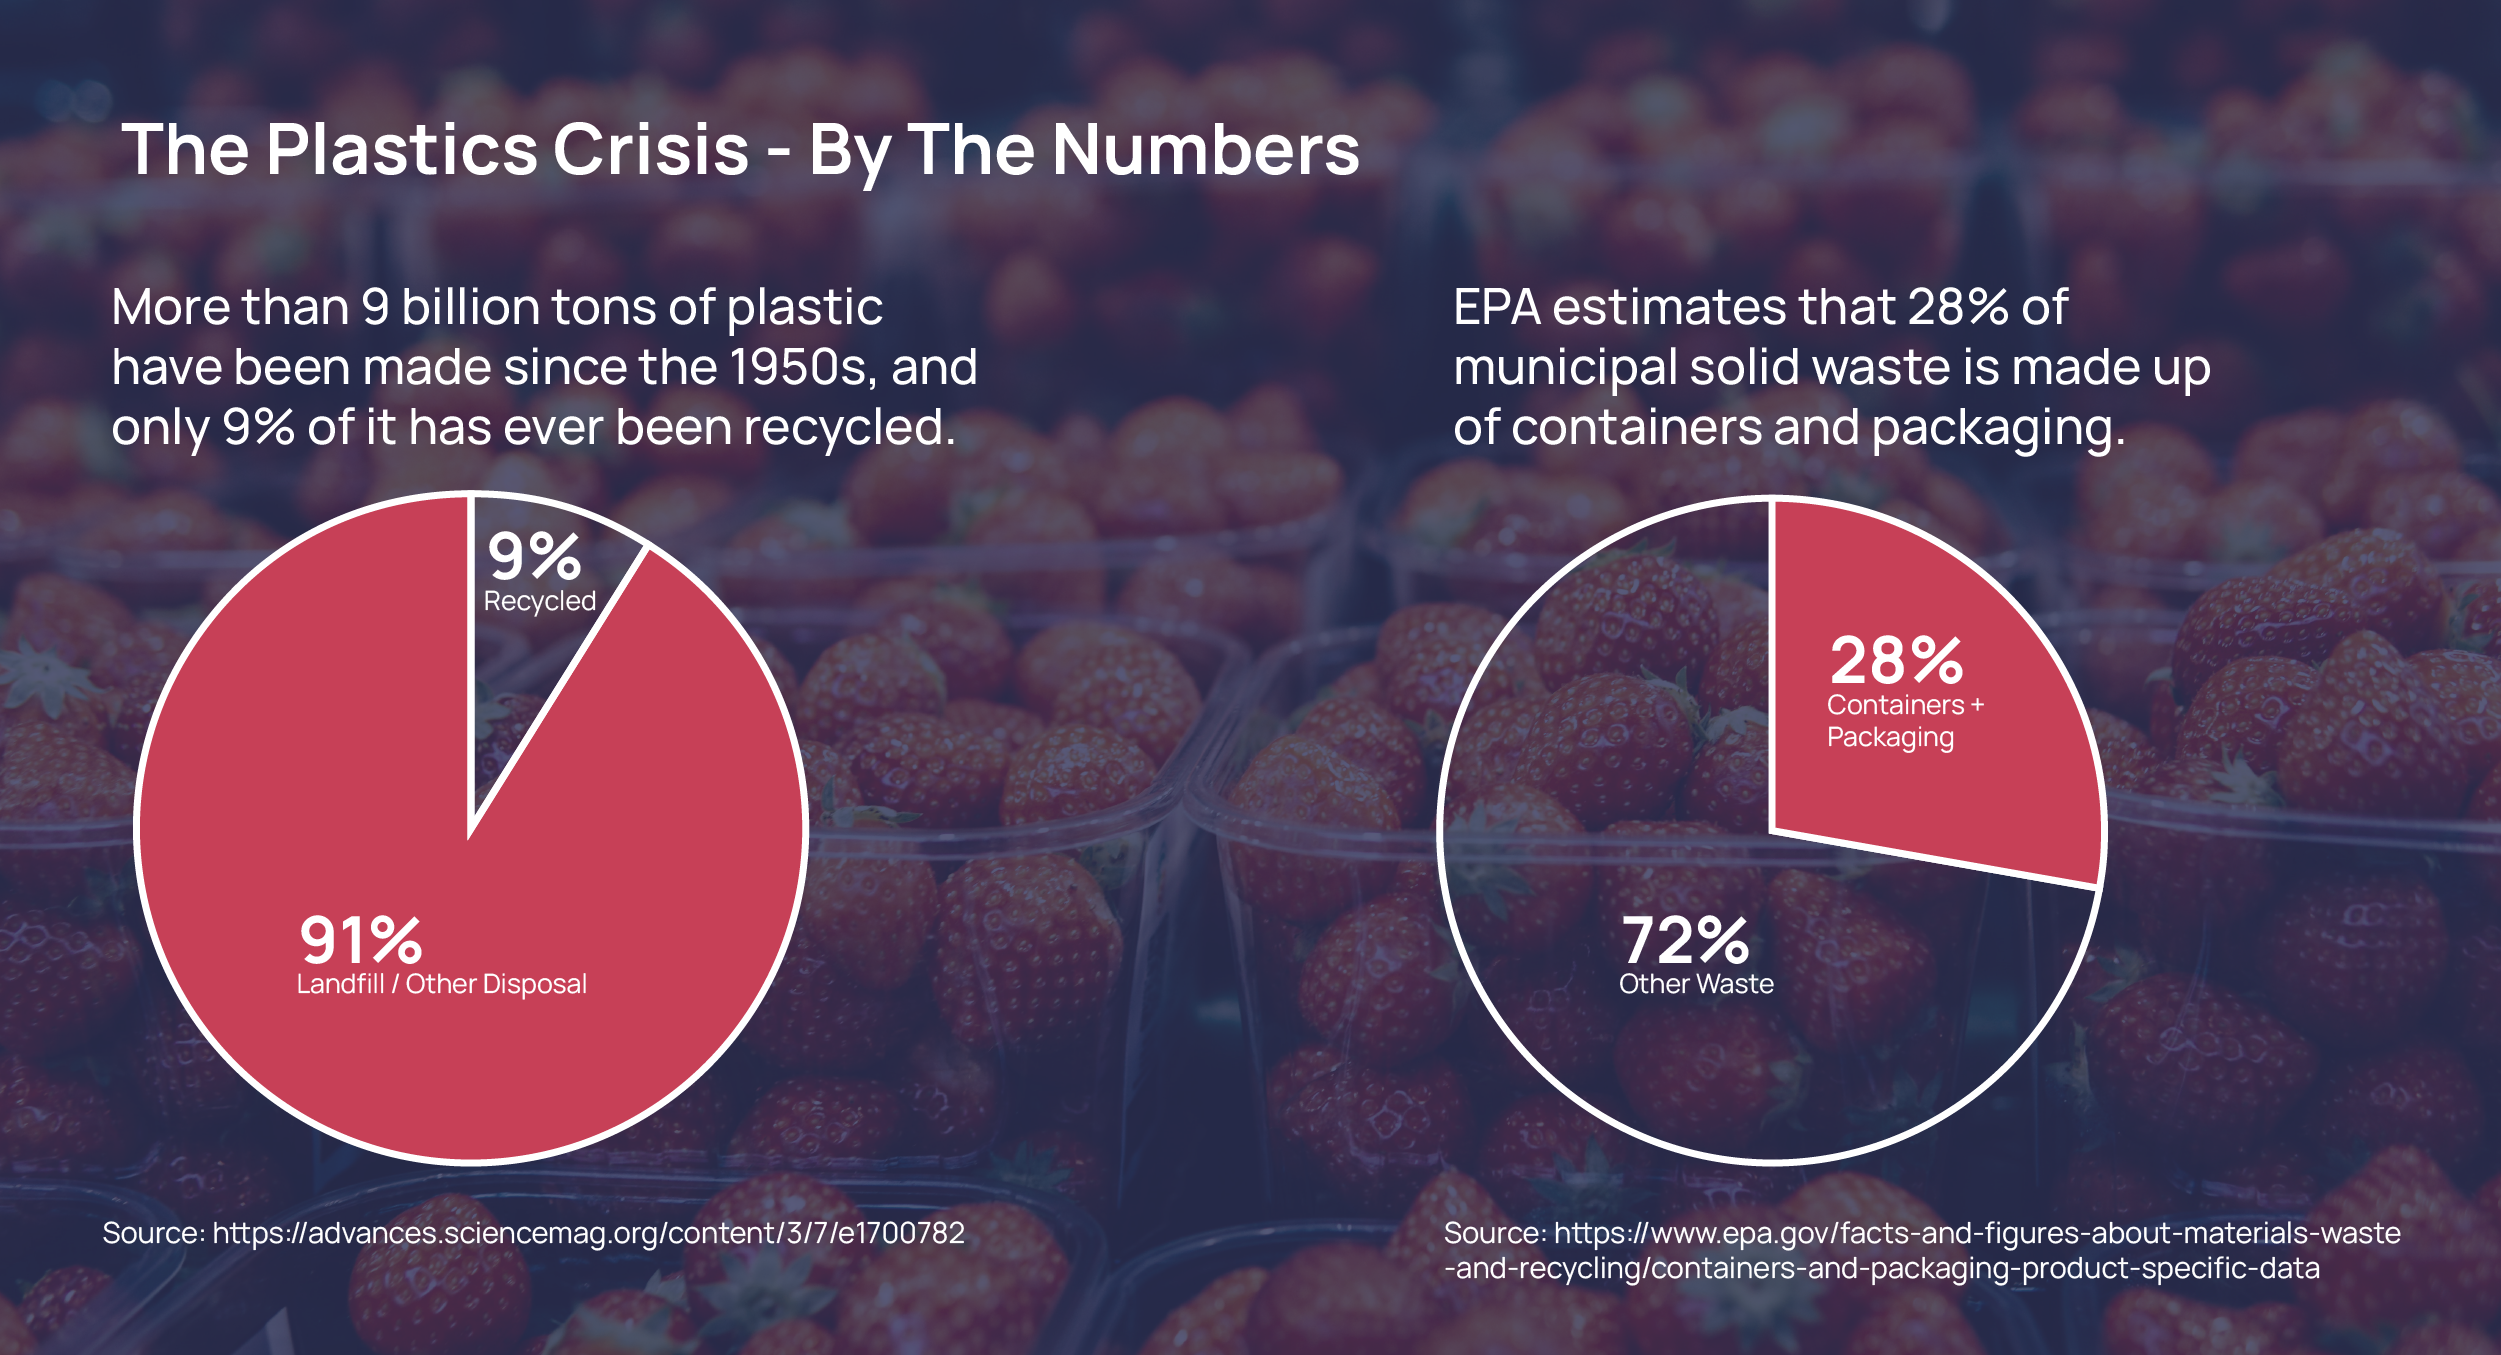 plastics crisis by the numbers